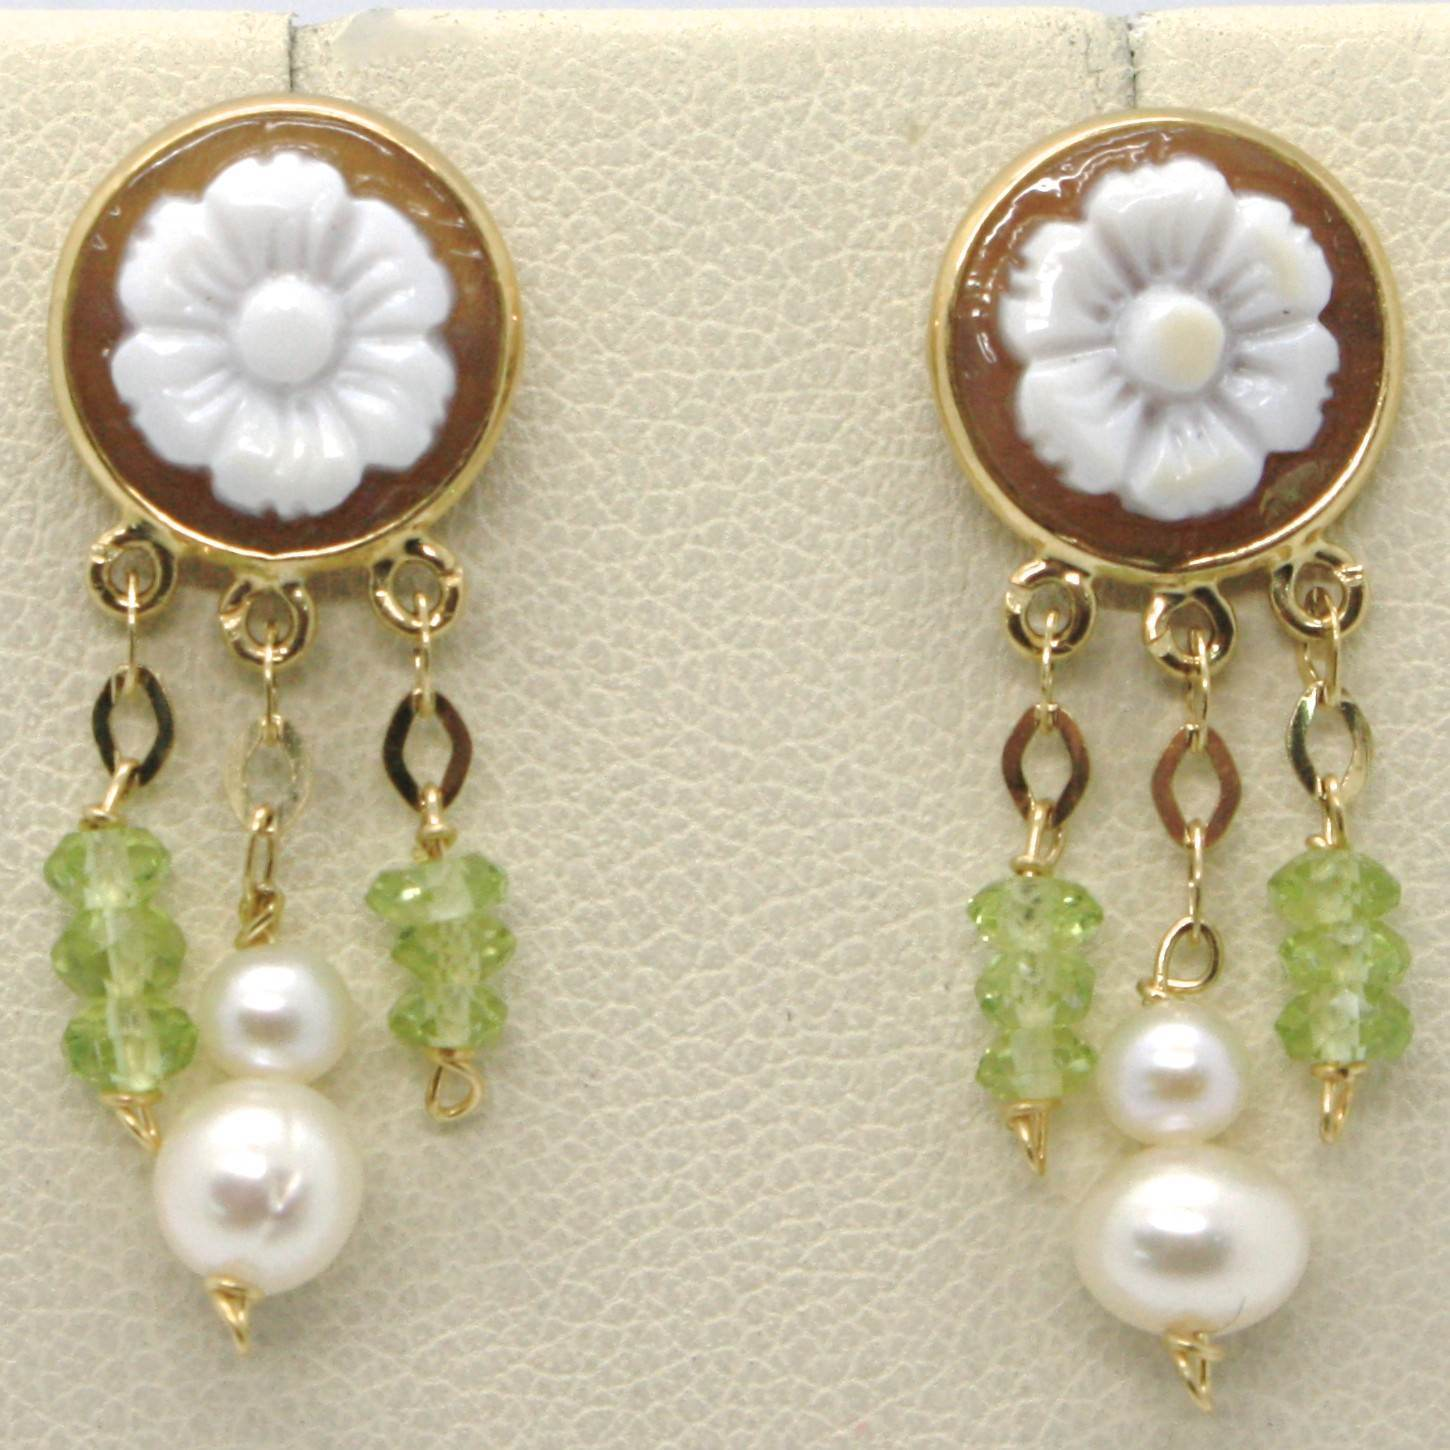 18K YELLOW GOLD EARRINGS, PERIDOT CIRCLE FLOWER CAMEO FINELY HANDMADE IN ITALY